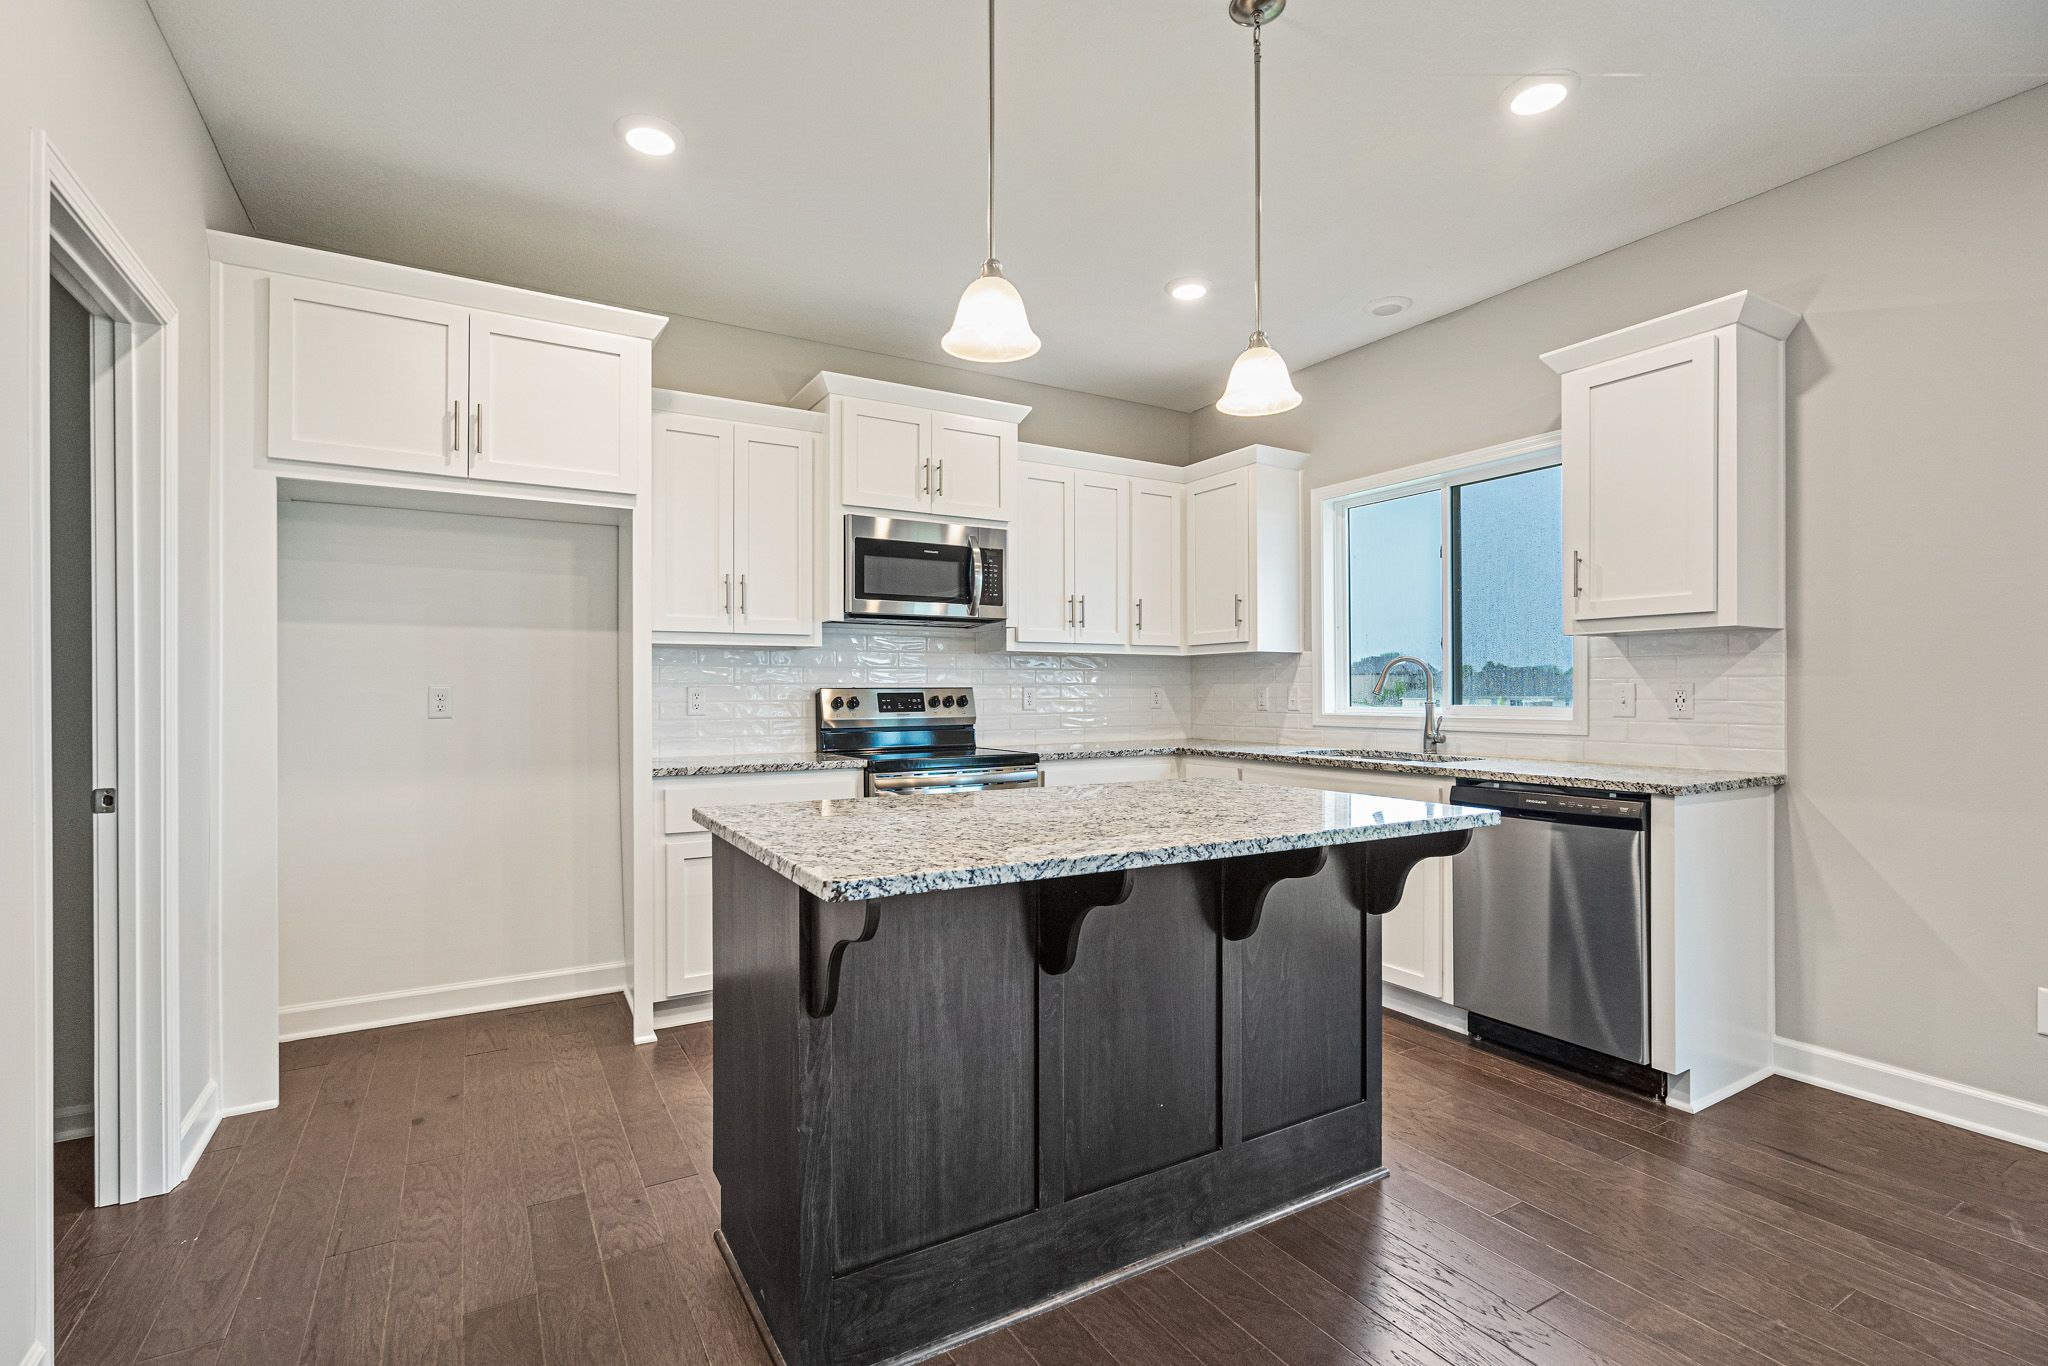 Kitchen featured in the Hemingway - IA By Summit Homes in Des Moines, IA